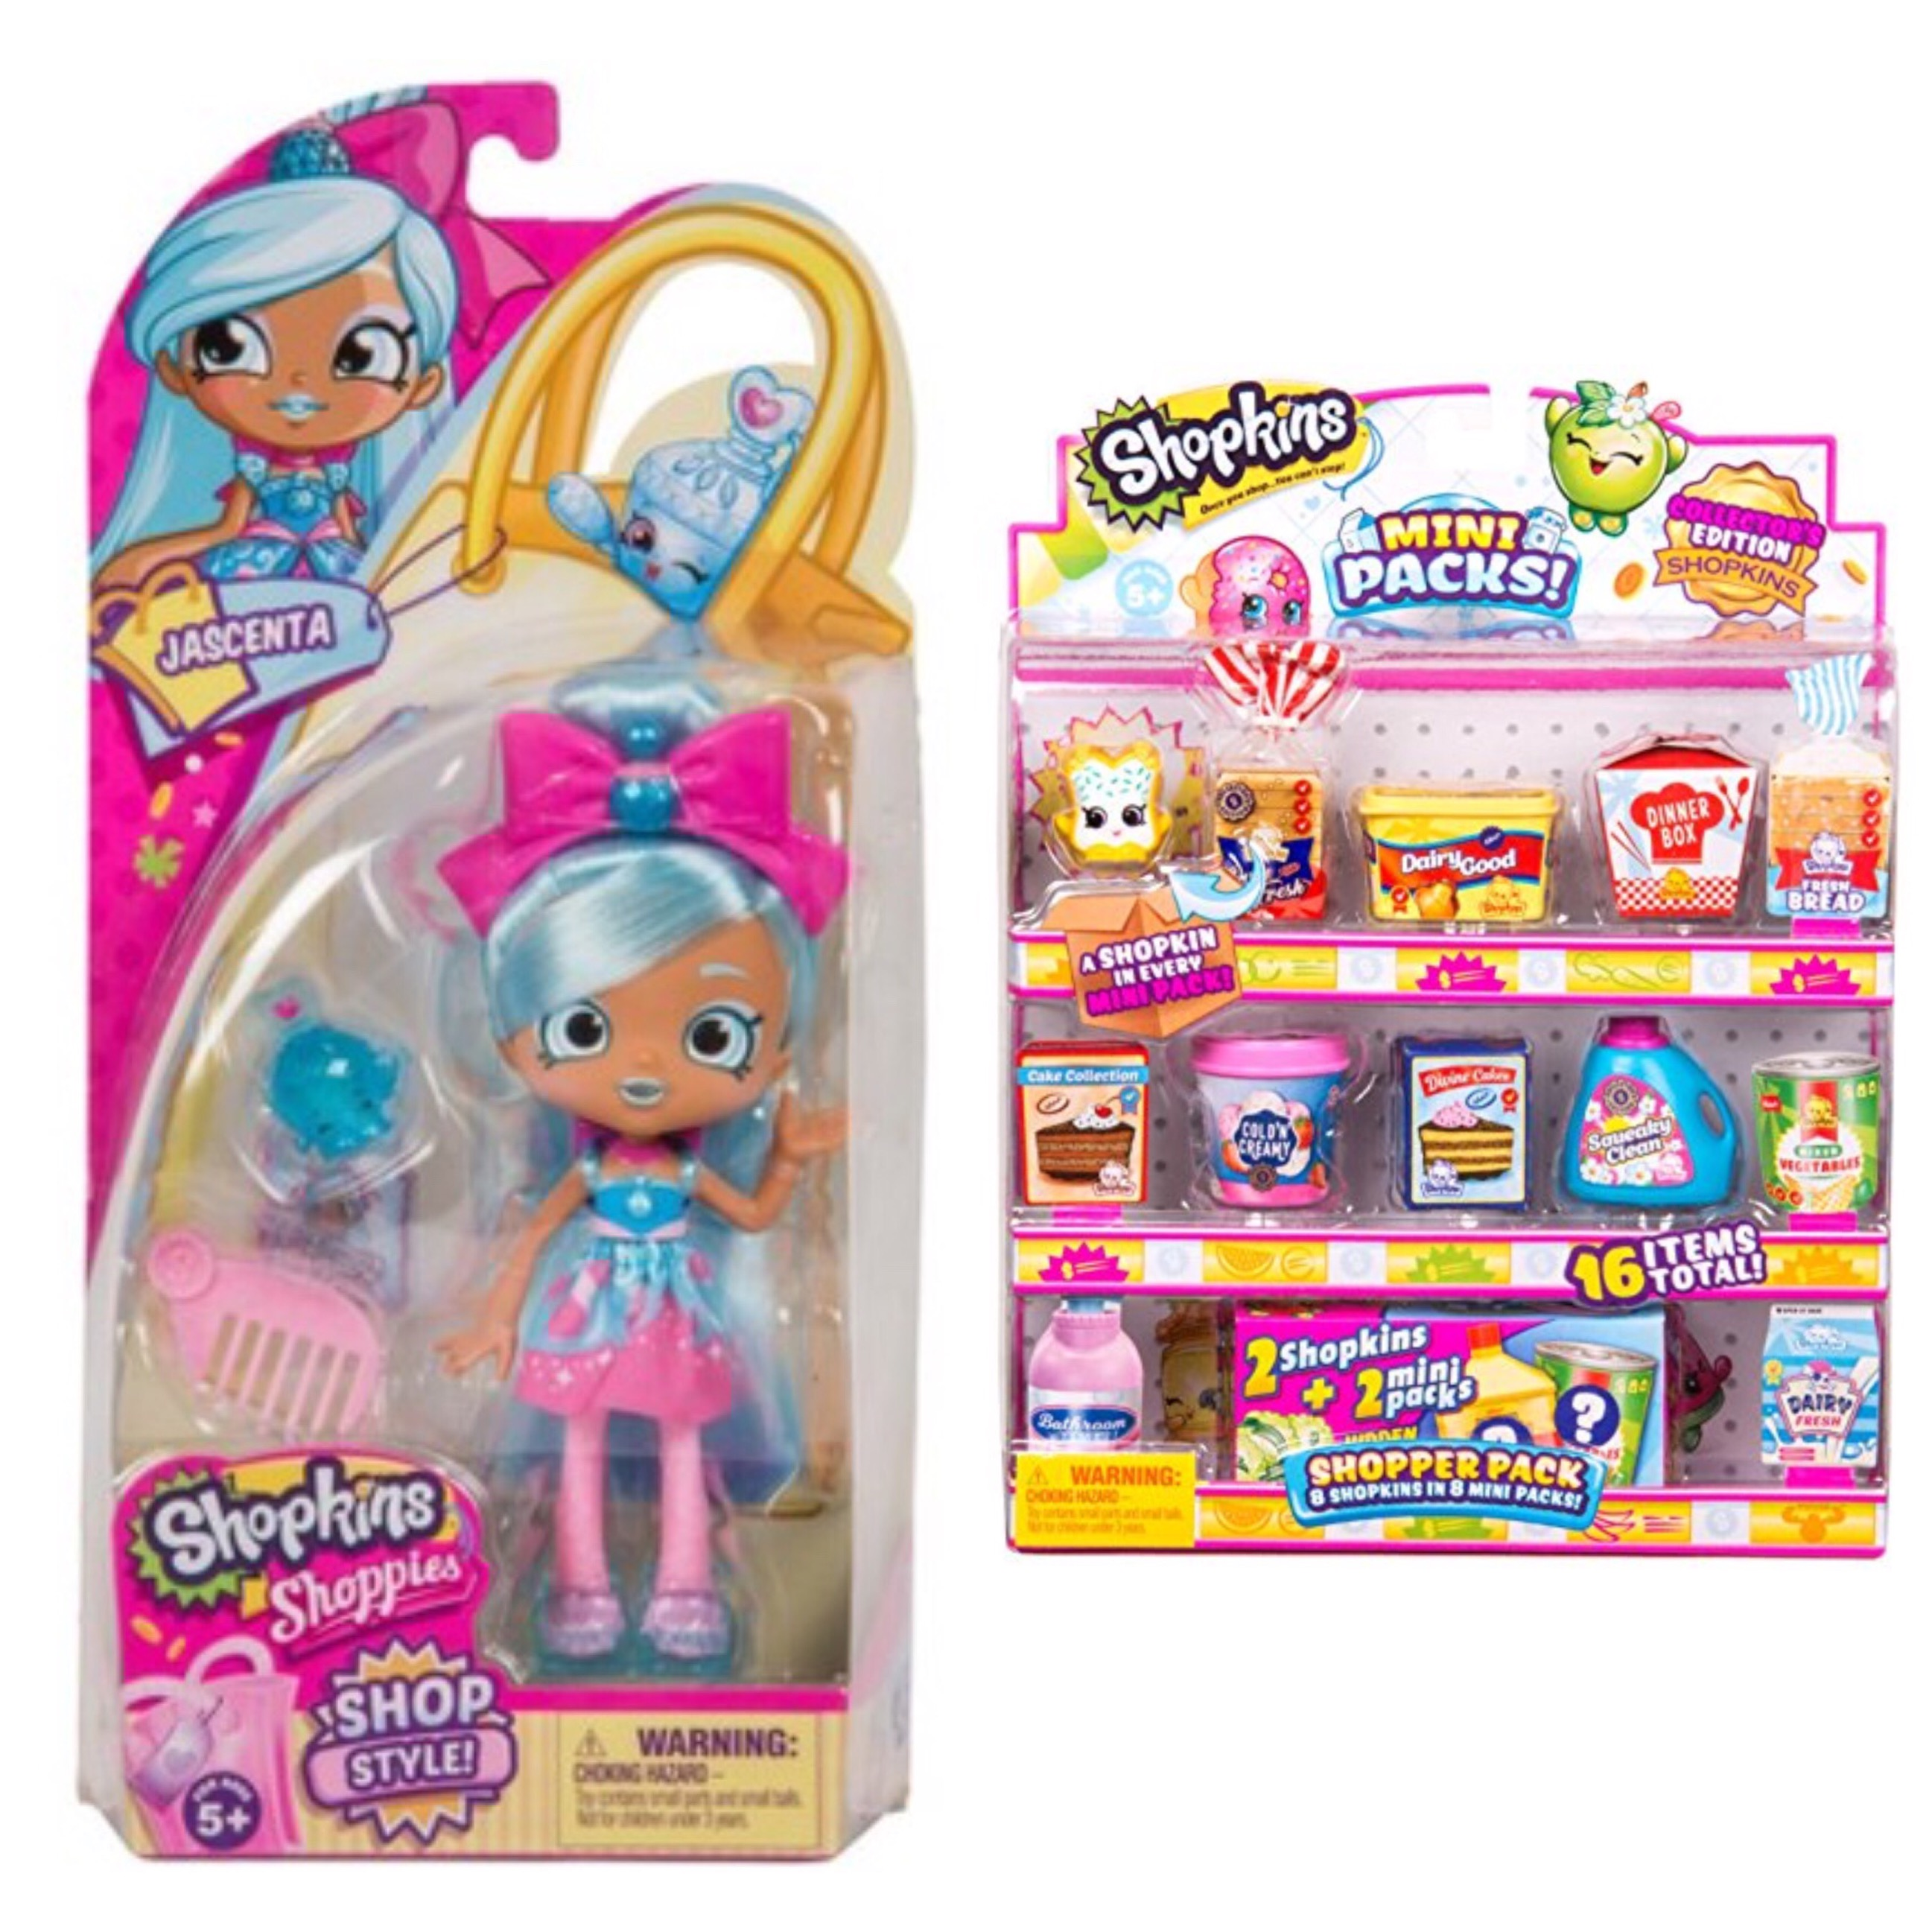 Shopkins Season 10 Shoppie Doll Jascenta and Mini Pack Shoppers Pack Bundle